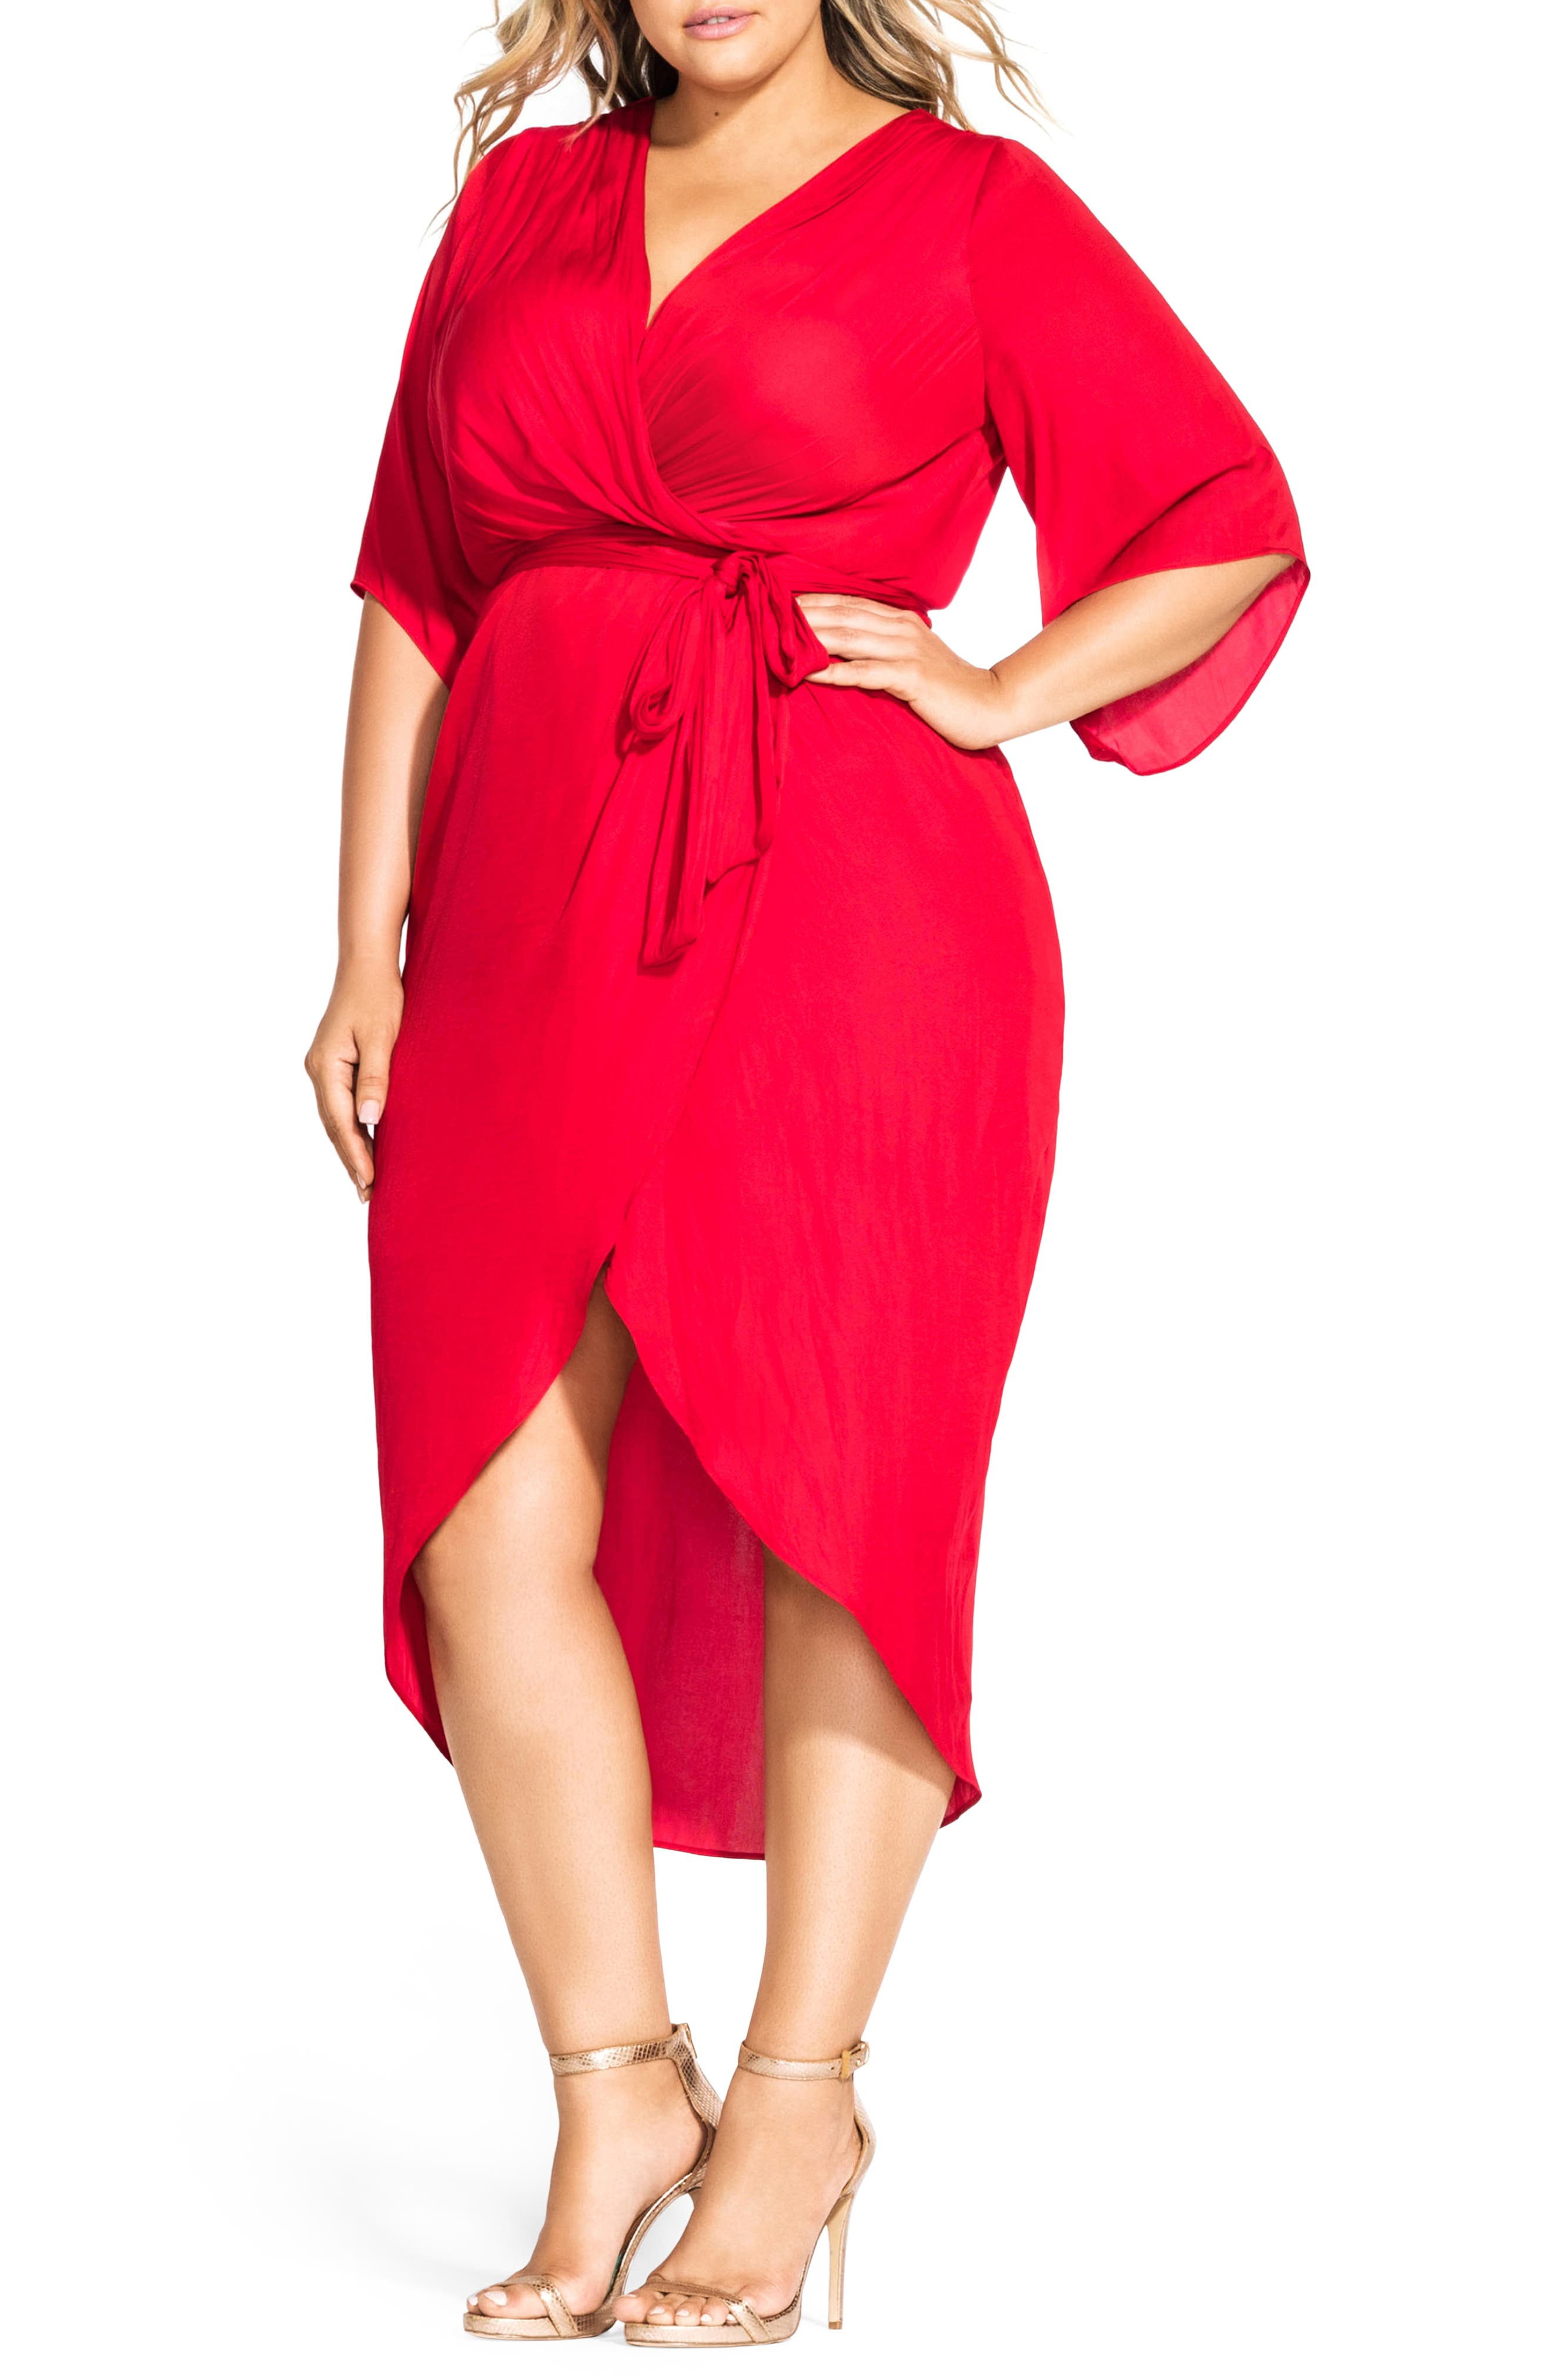 Plus Size City Chic Opulent Hammered Satin Wrap Style Dress, Red